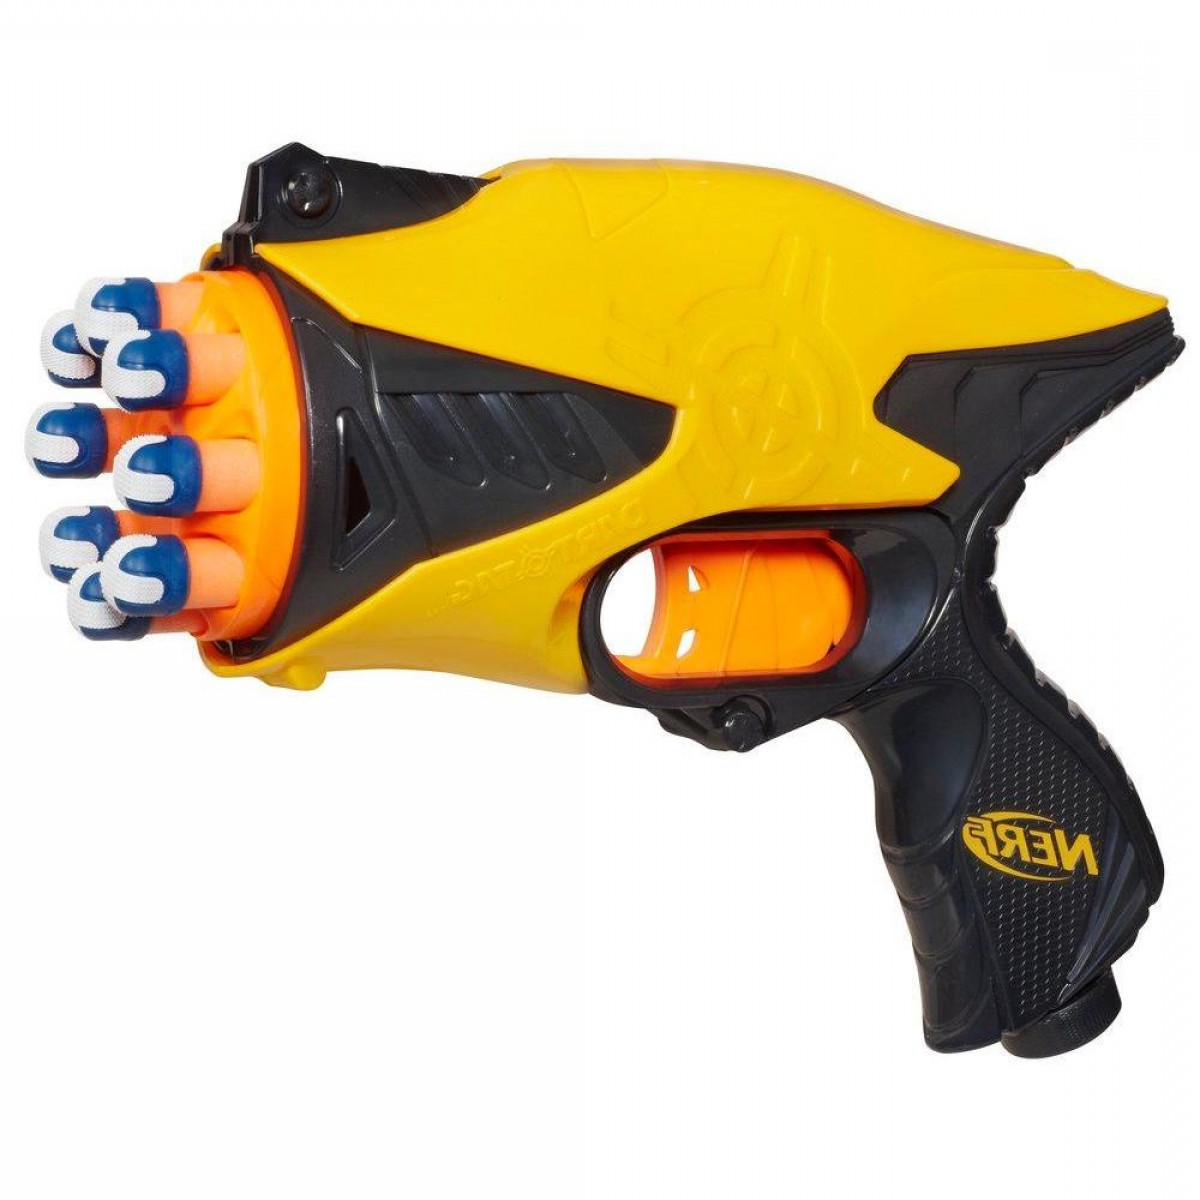 1200x1200 Part Man Part Nerf Machine Gun Arenawp